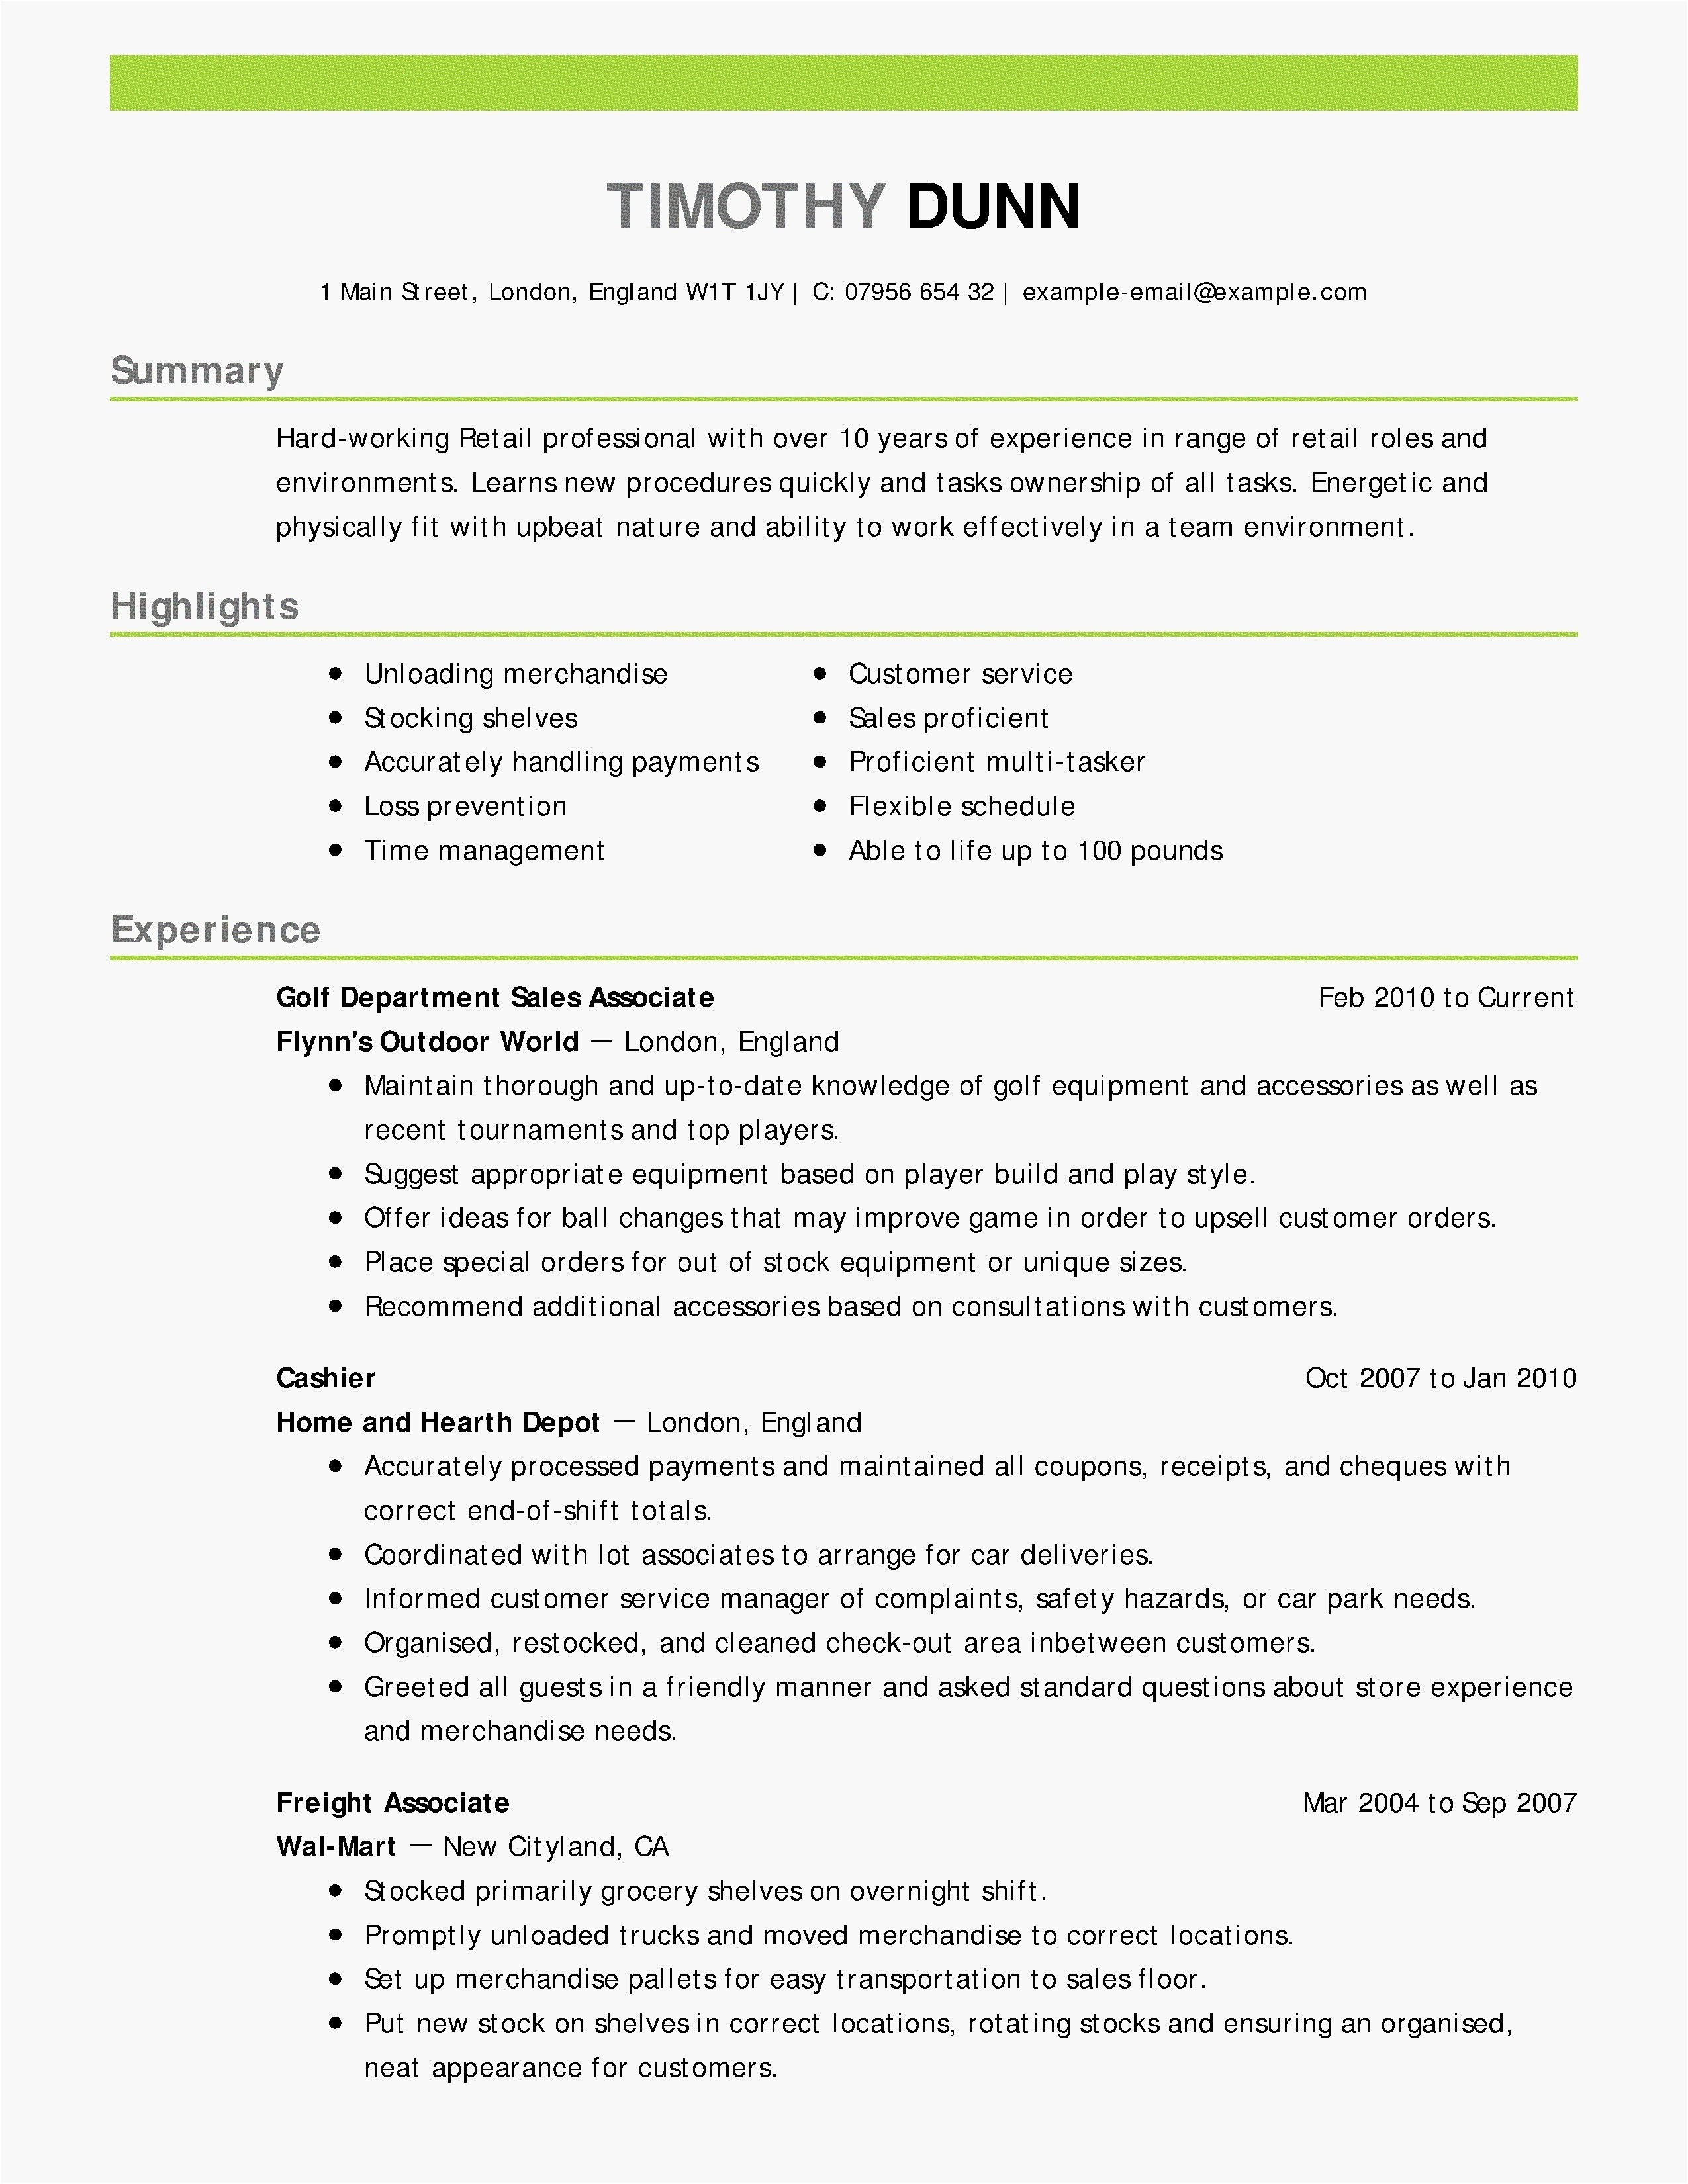 Create Resume Online Free - How Do You Make Your Resume Stand Out Sample Pdf How to Make My